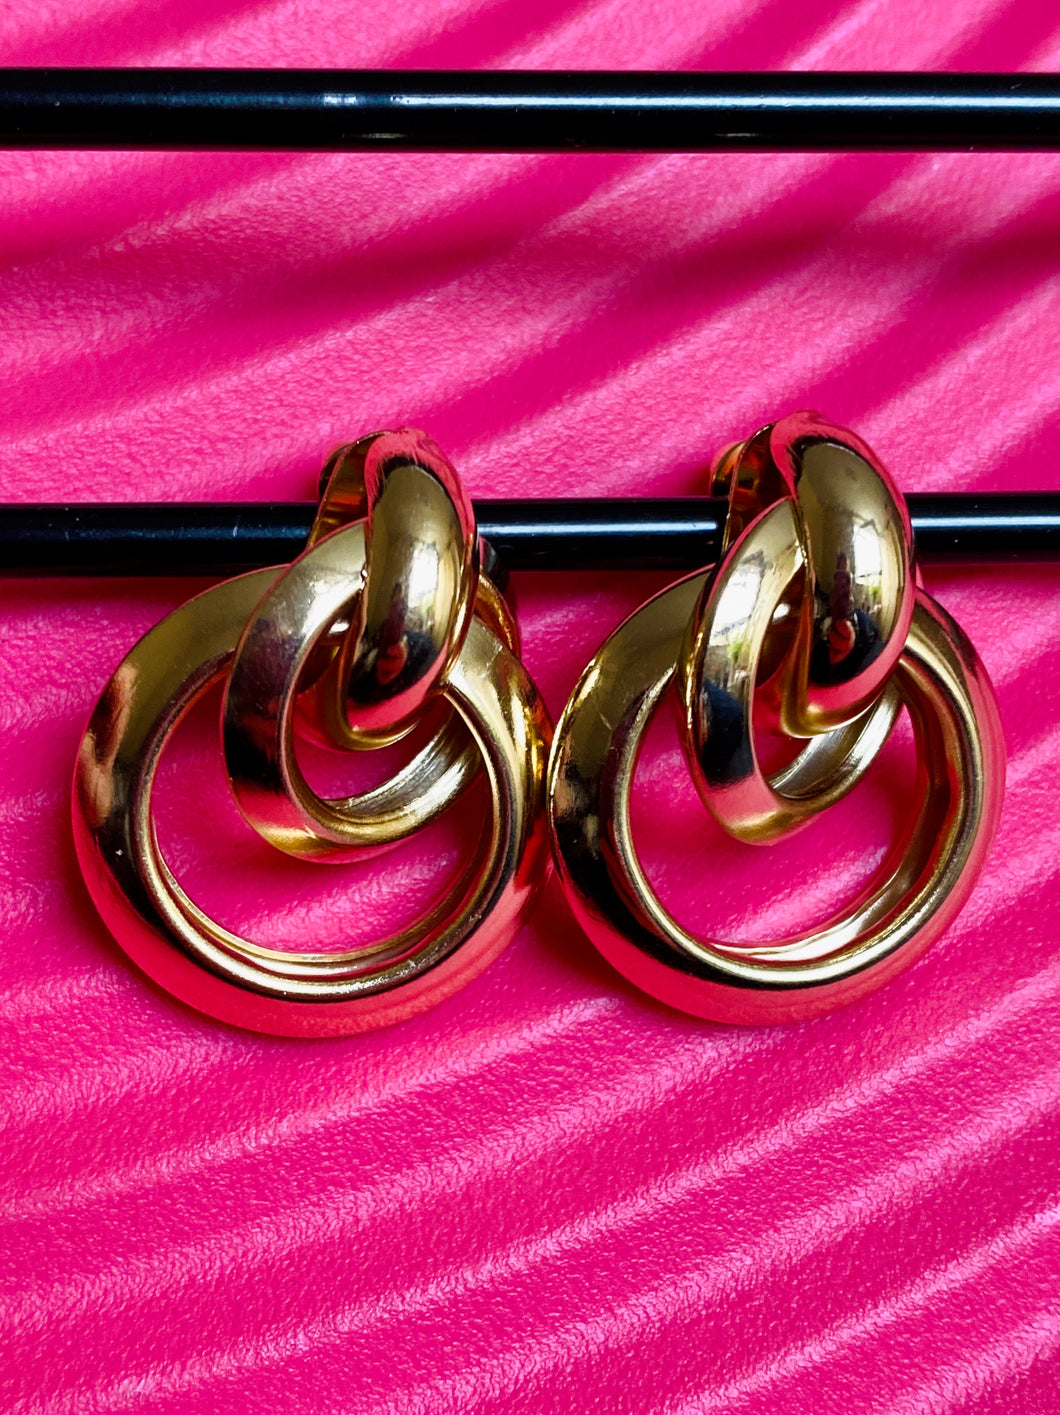 Vintage Inspired Earrings Triple Hoops in Gold Colour